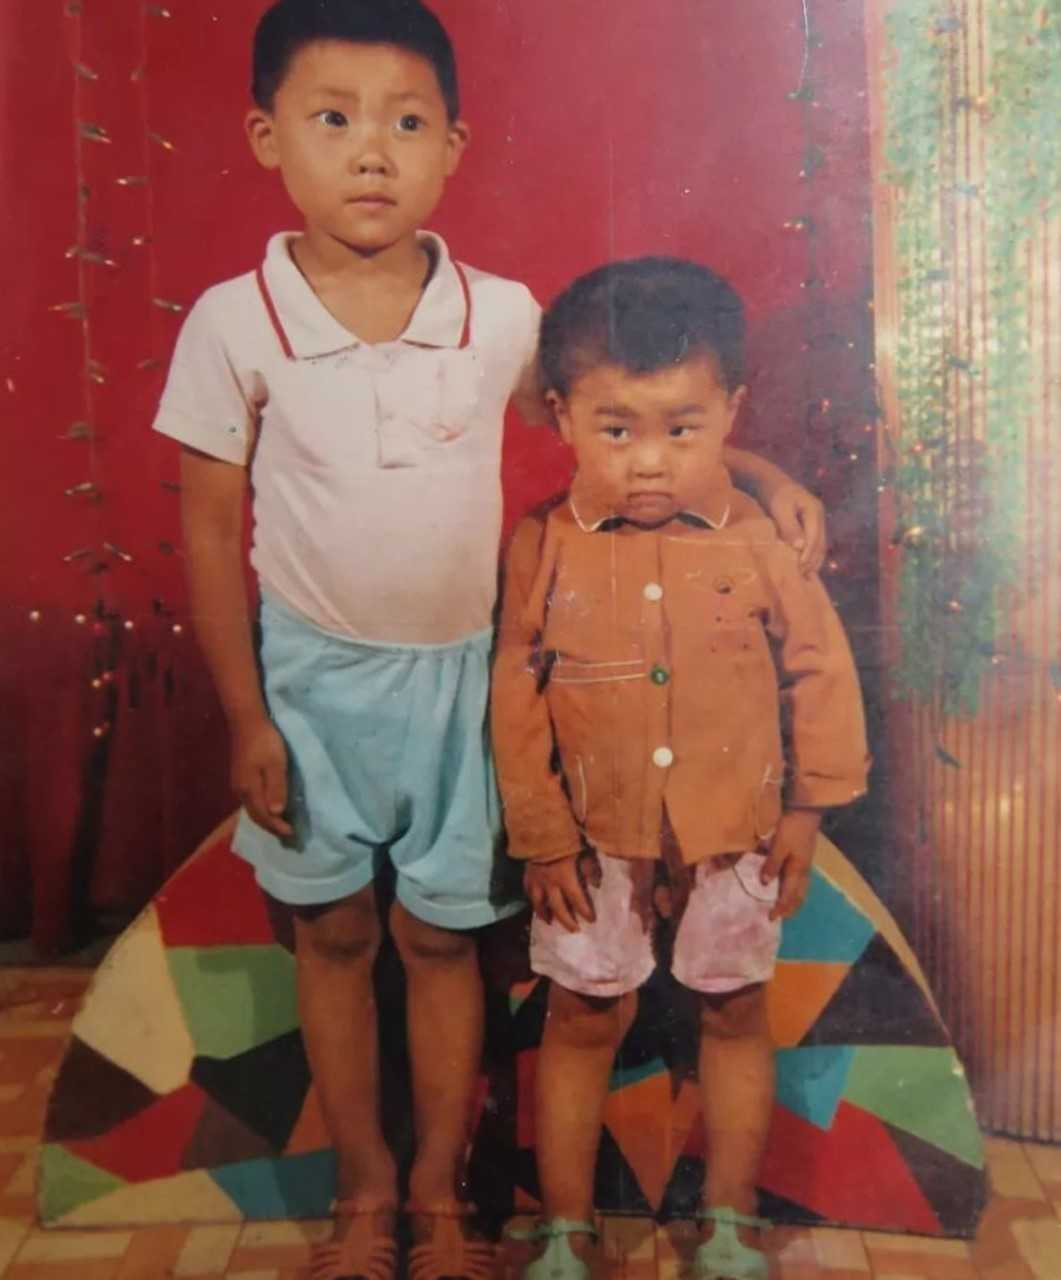 Mr Hao, right, was only eight years old when he was abducted. Credit: AsiaWire